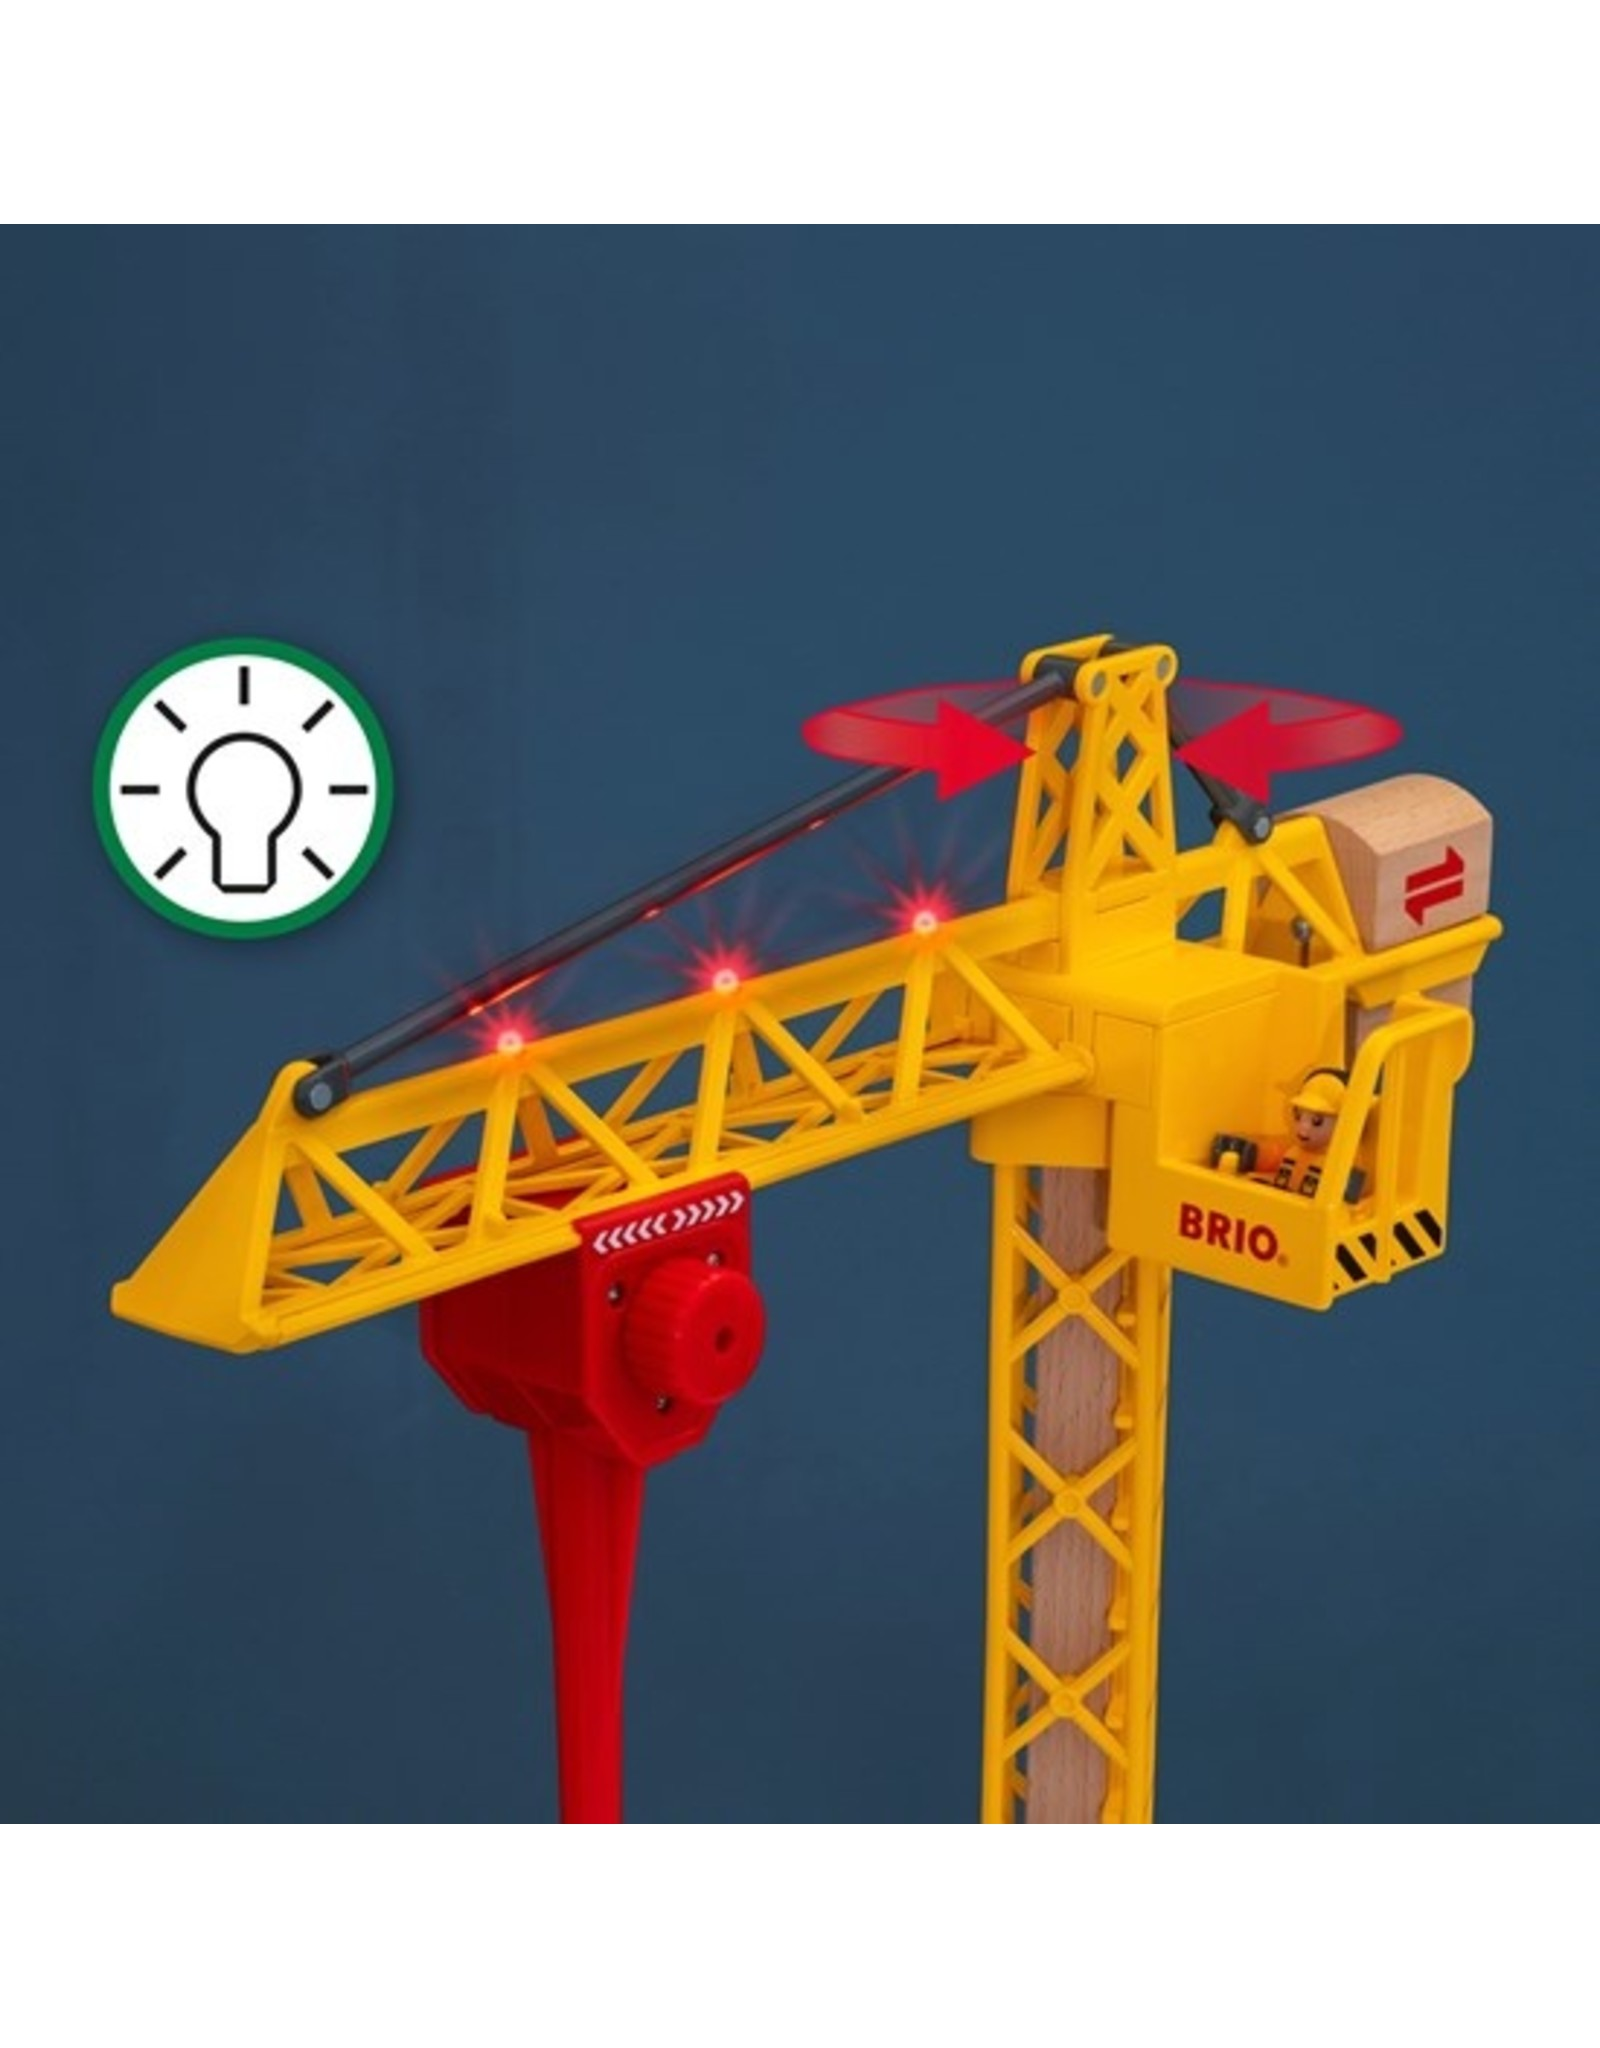 Brio BRIO Construction Crane with Lights